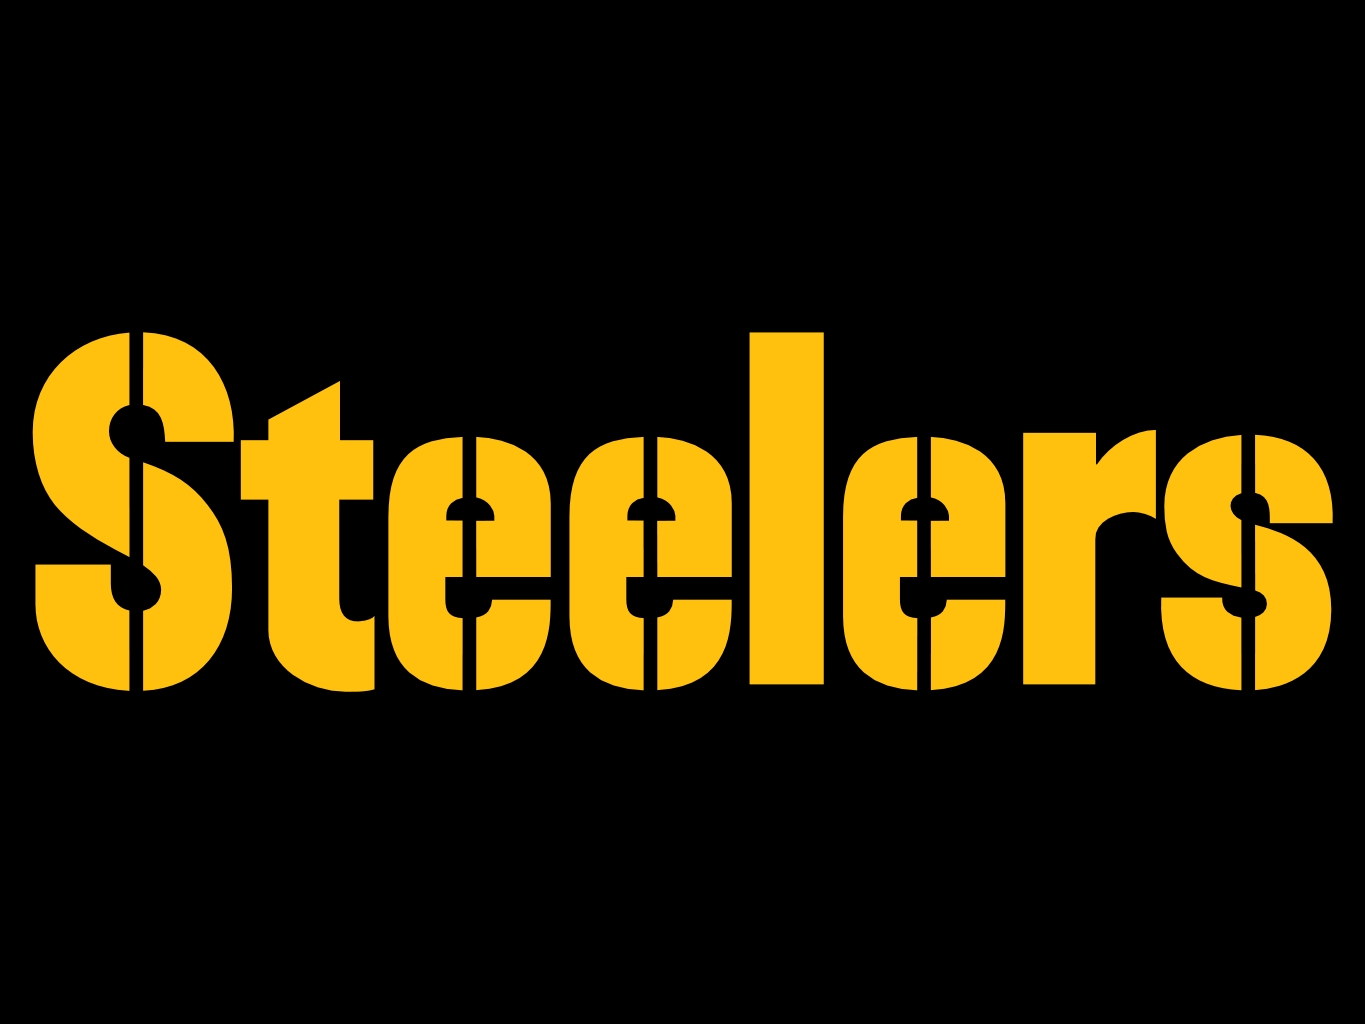 Free PNG Pittsburgh Steelers - 71438